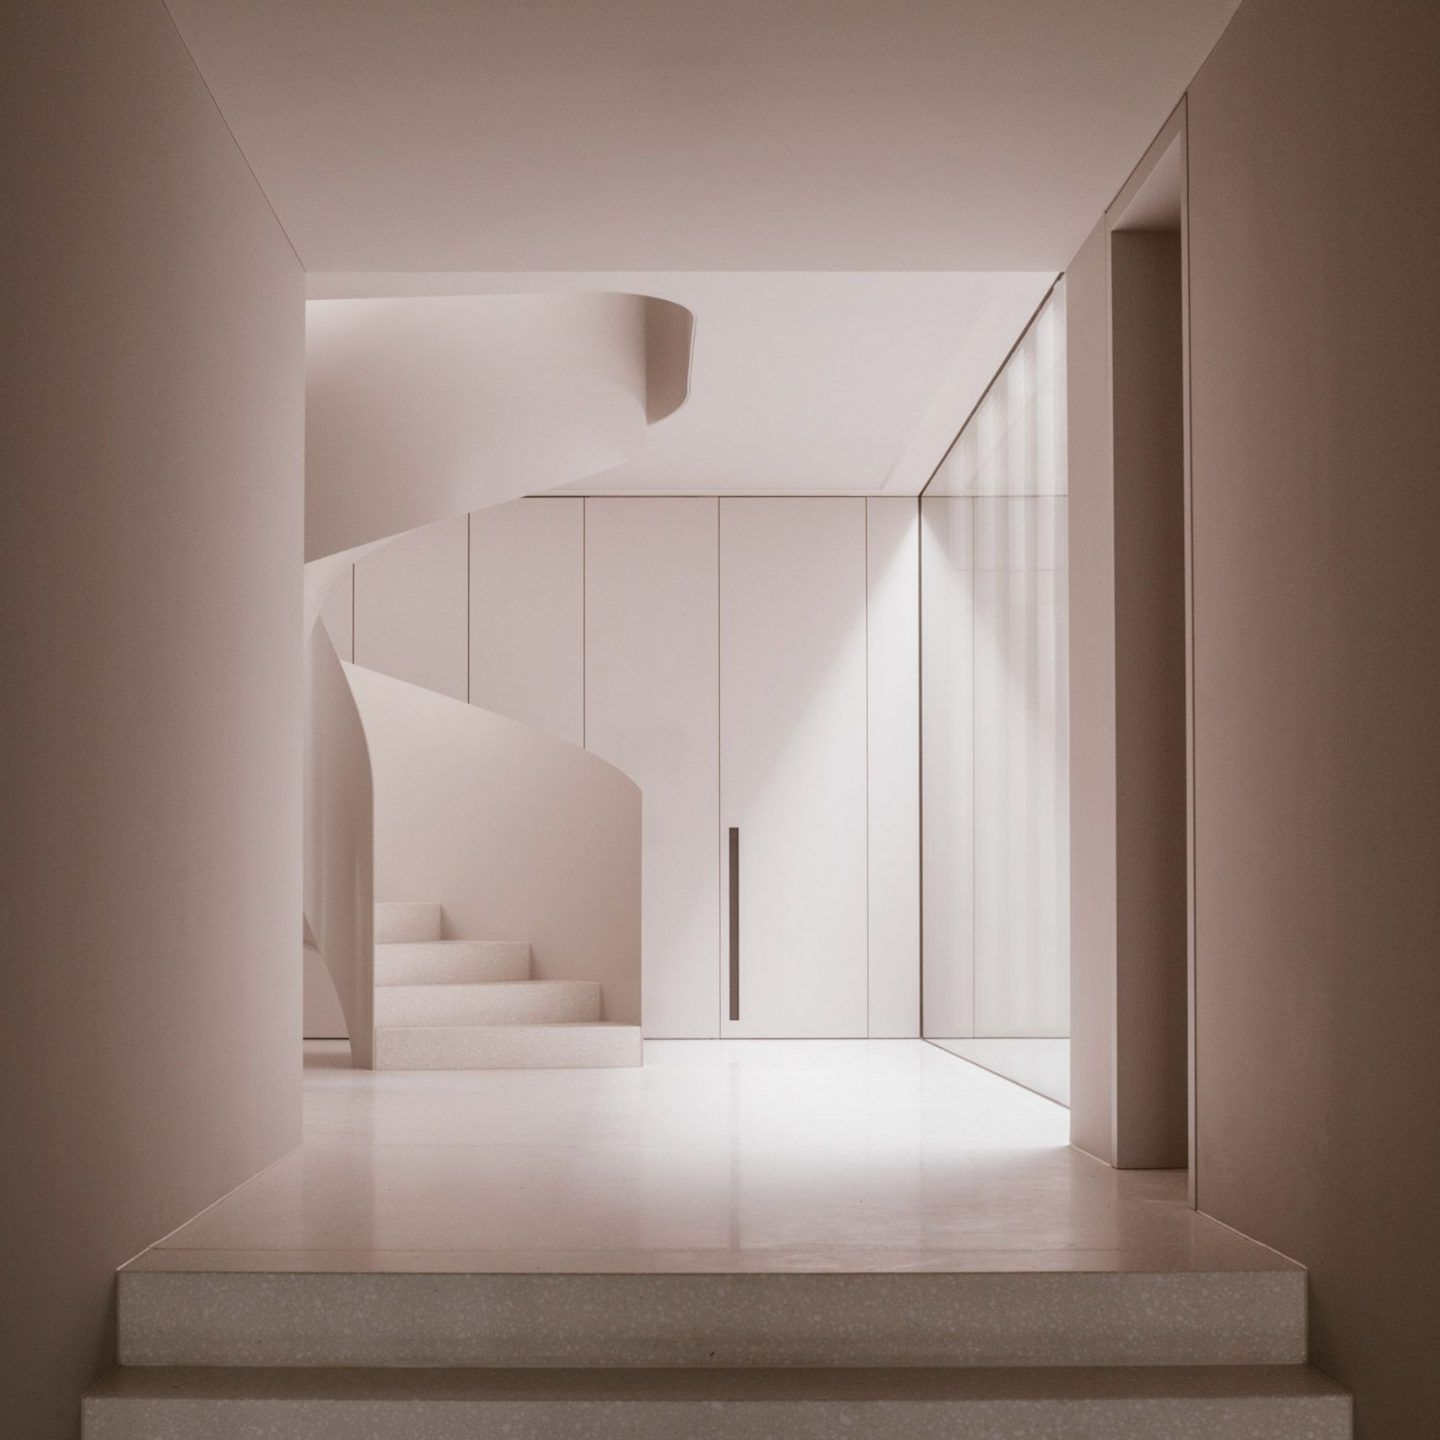 IGNANT-Architecture-Think-Architecture-Minimal-House-009